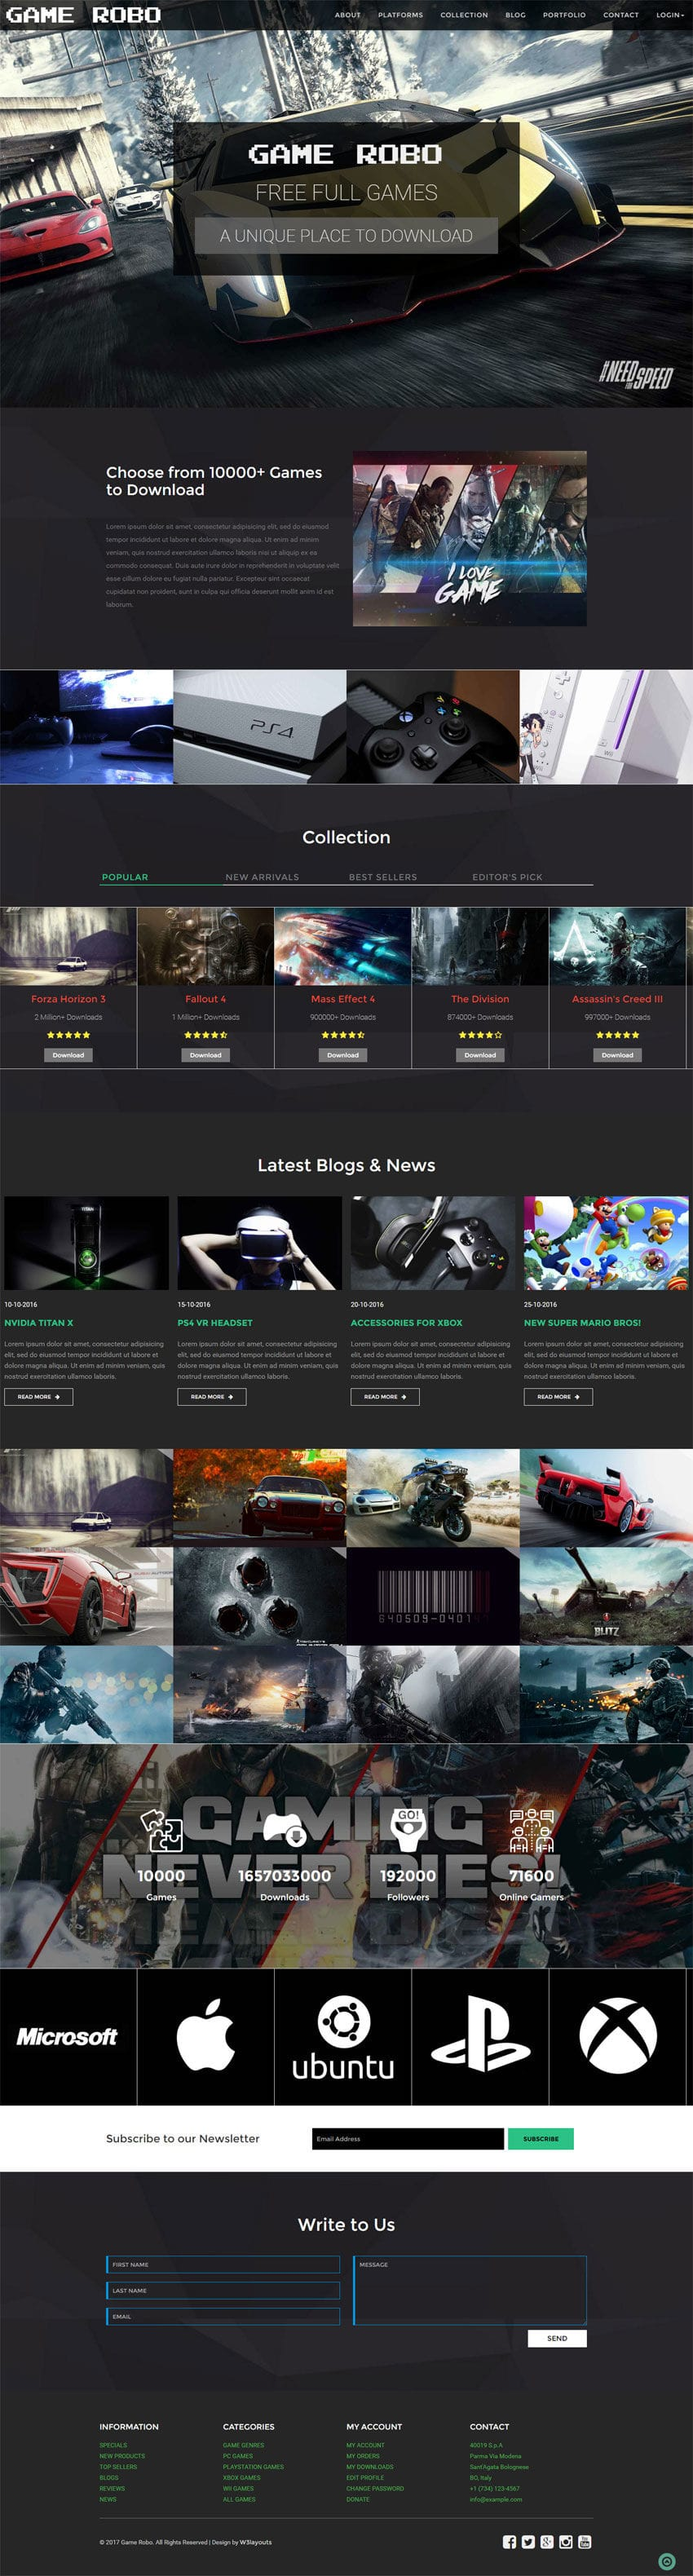 game robo a games category bootstrap responsive web template. Black Bedroom Furniture Sets. Home Design Ideas